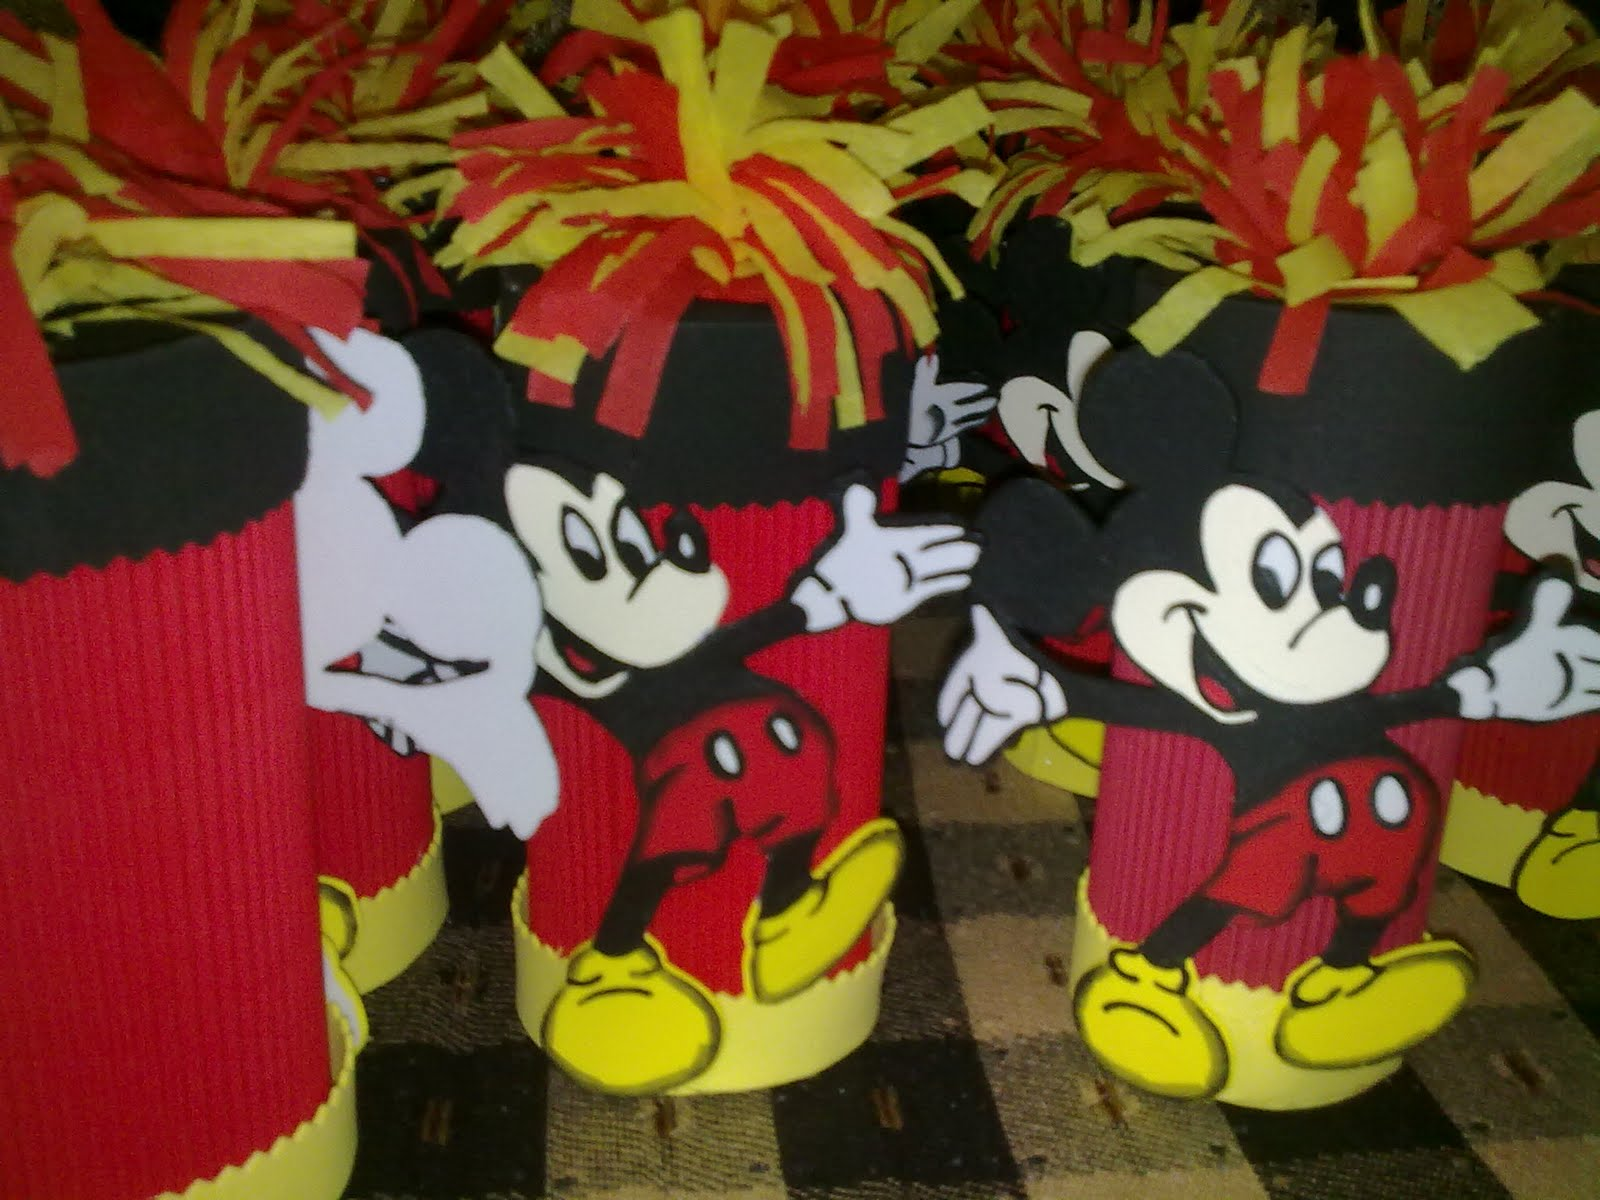 MANUALIDADES SHIREL: COTILLONES DE MIKEY Y MINI MOUSE